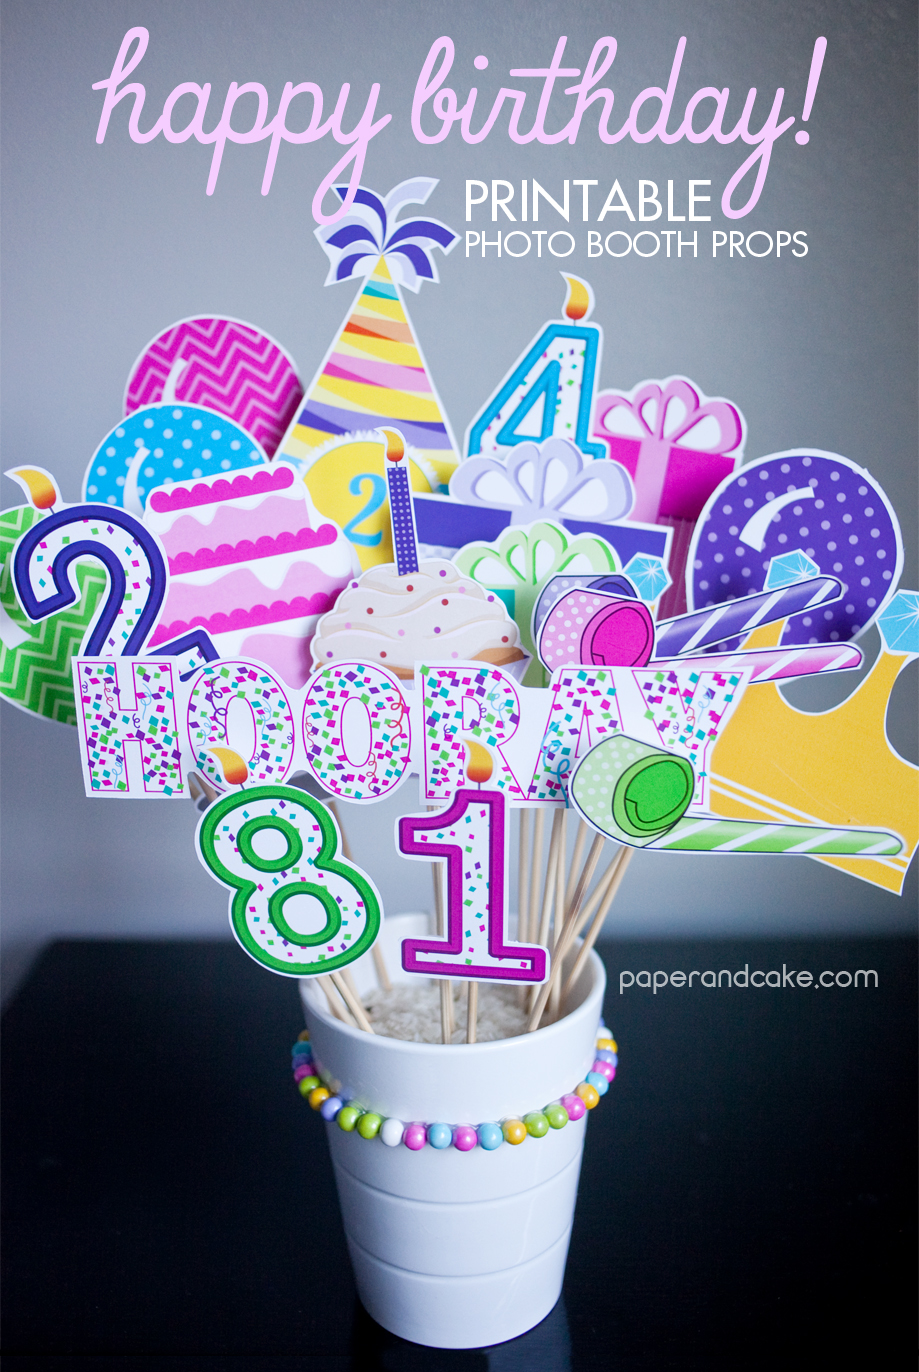 Birthday Party Printable Photo Props Paper And Cake